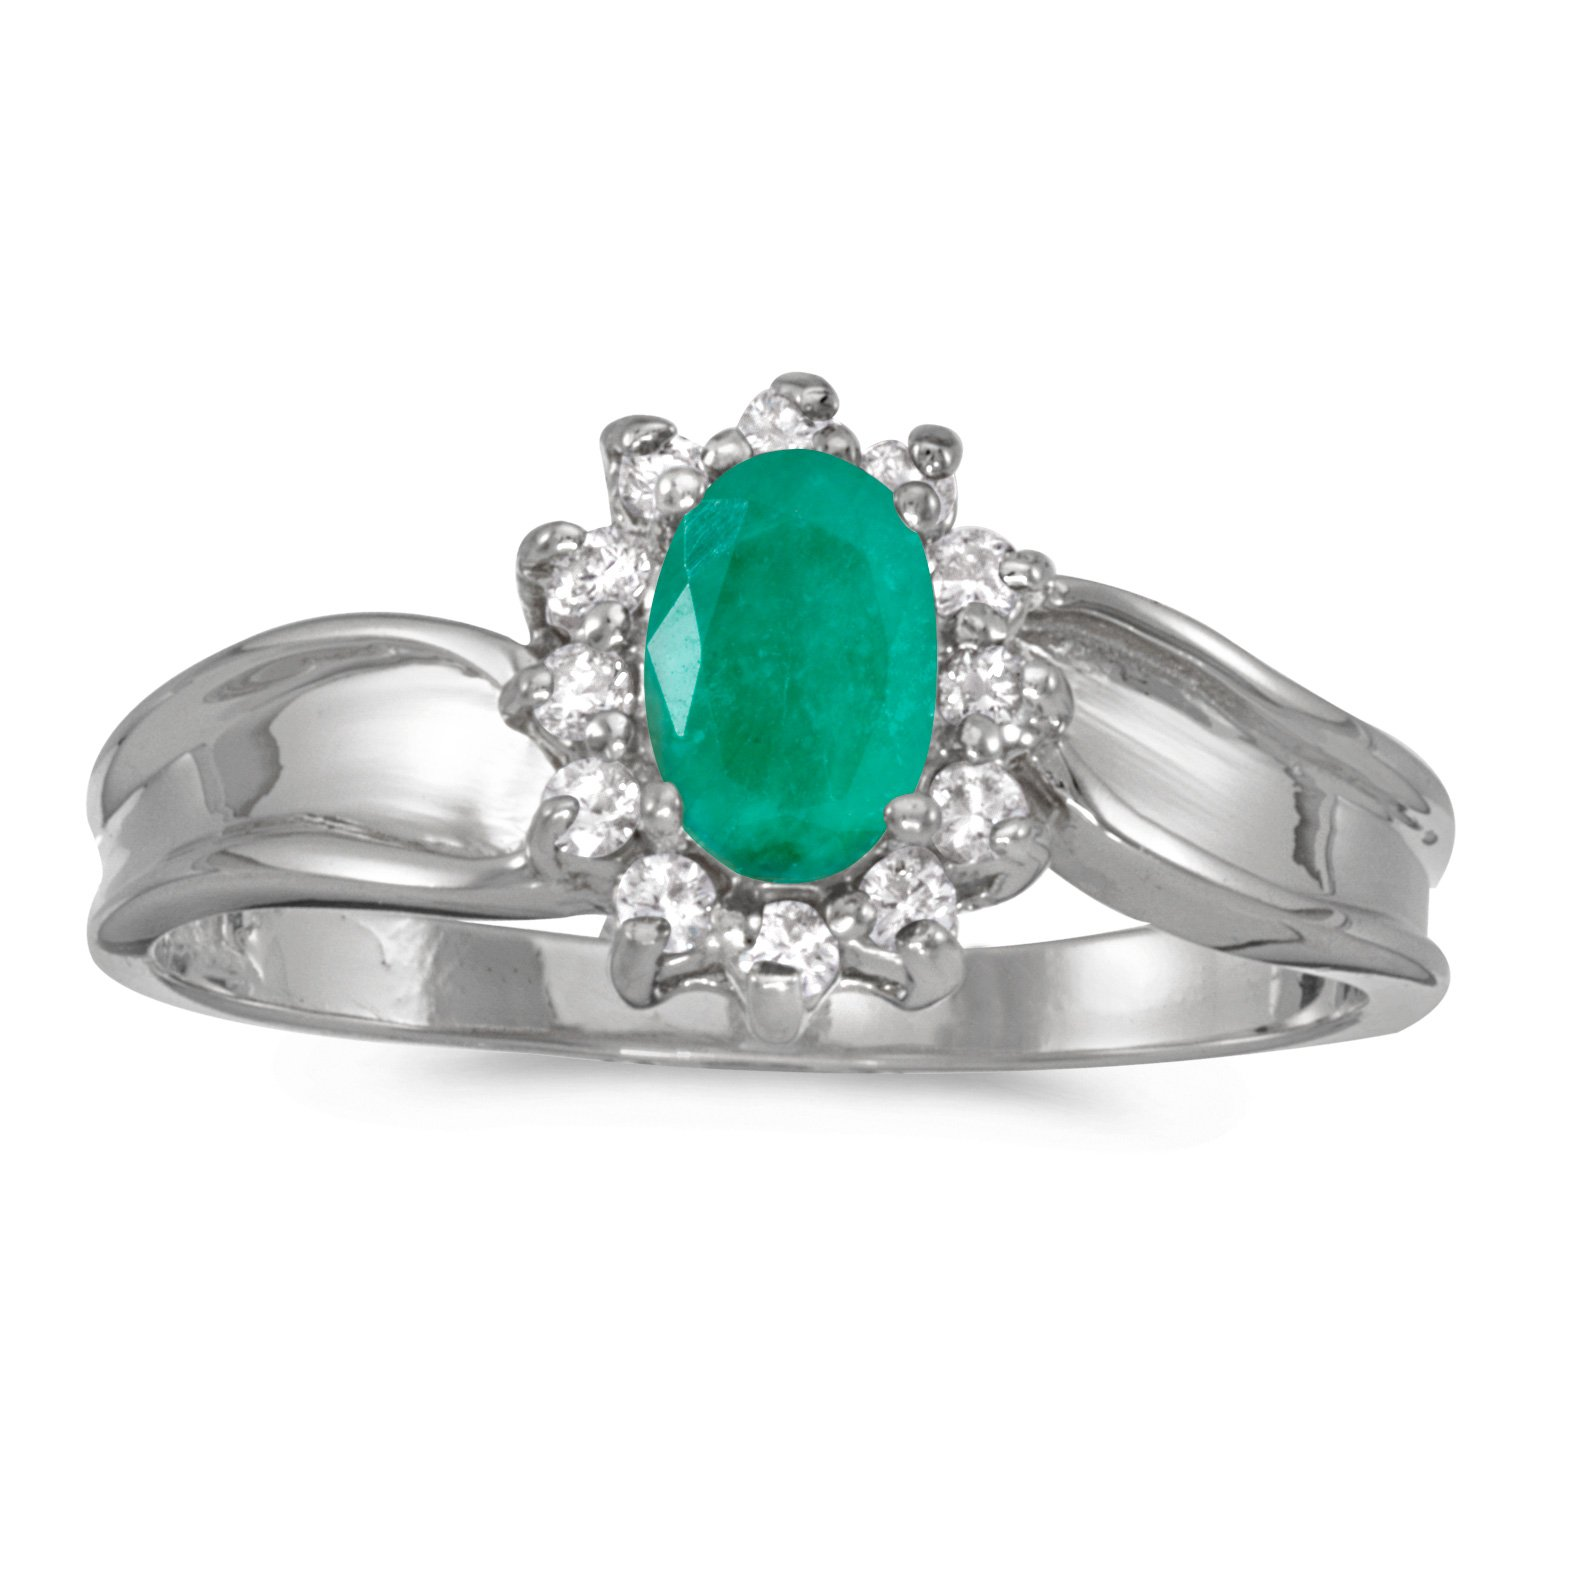 Jewels By Lux 14k White Gold Genuine Green Birthstone Solitaire Oval Emerald And Diamond Wedding Engagement Ring - Size 8 (0.31 Cttw.)